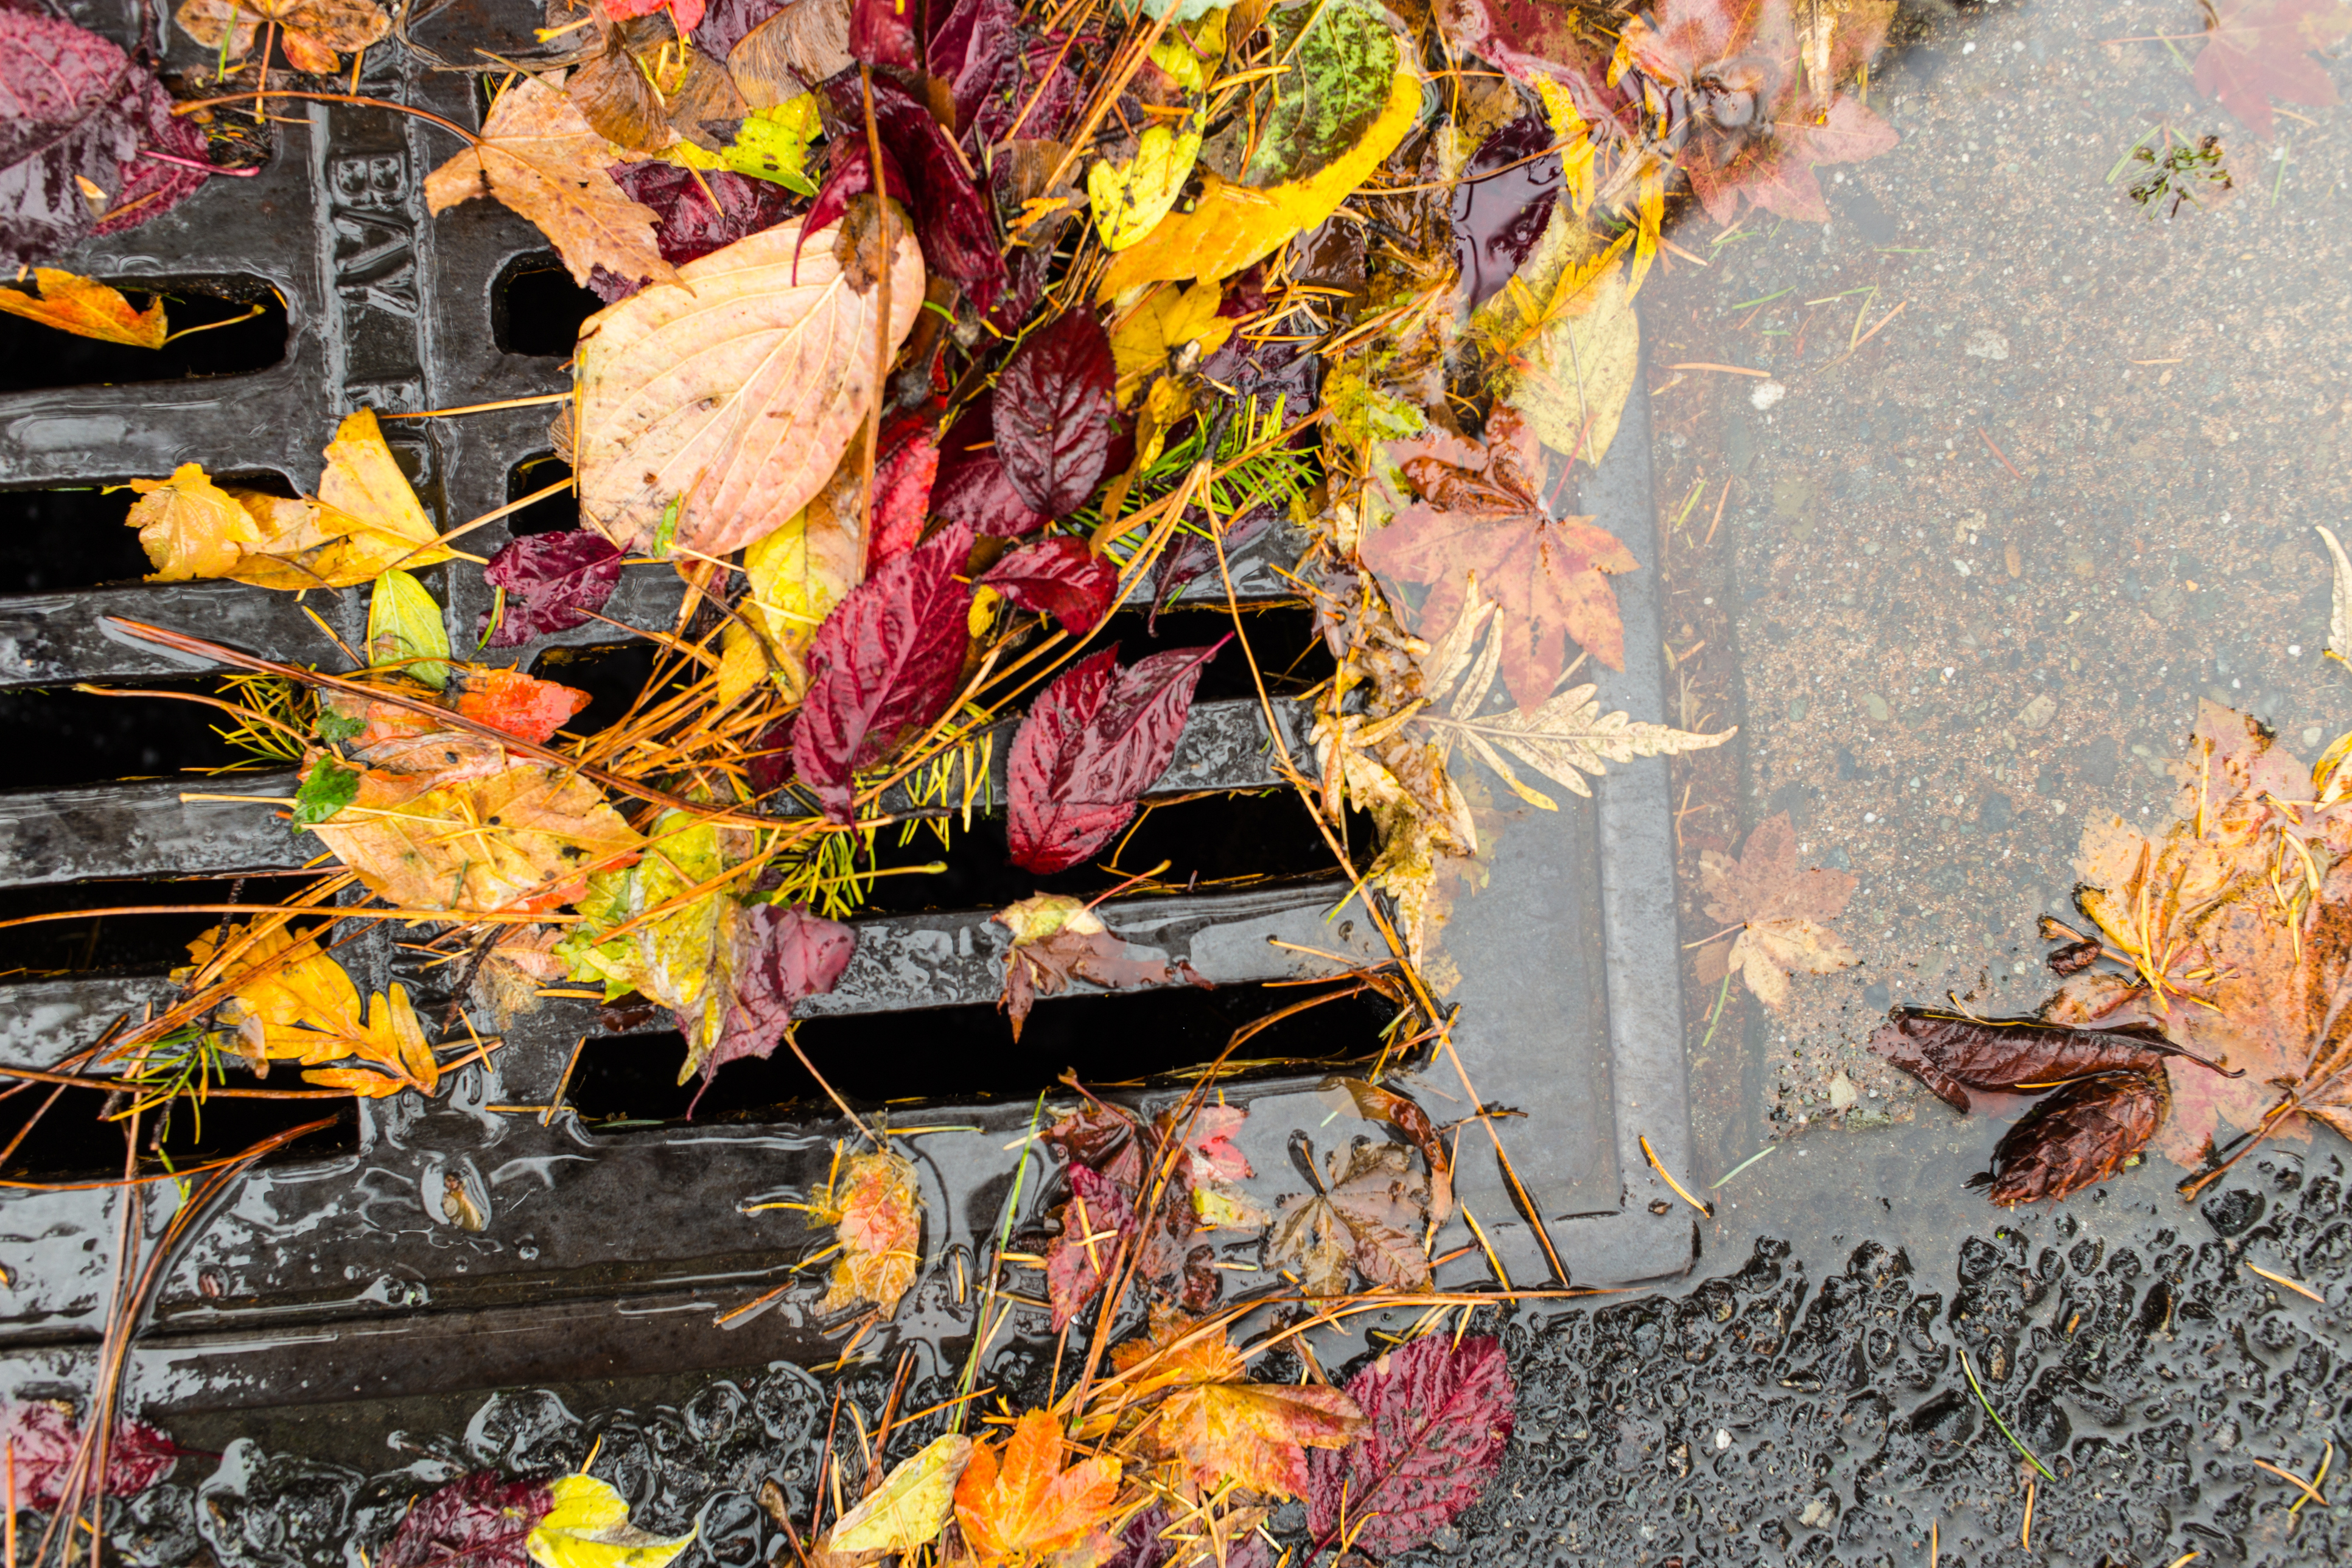 Yard Waste: Proper Disposal is Important - Neponset ...